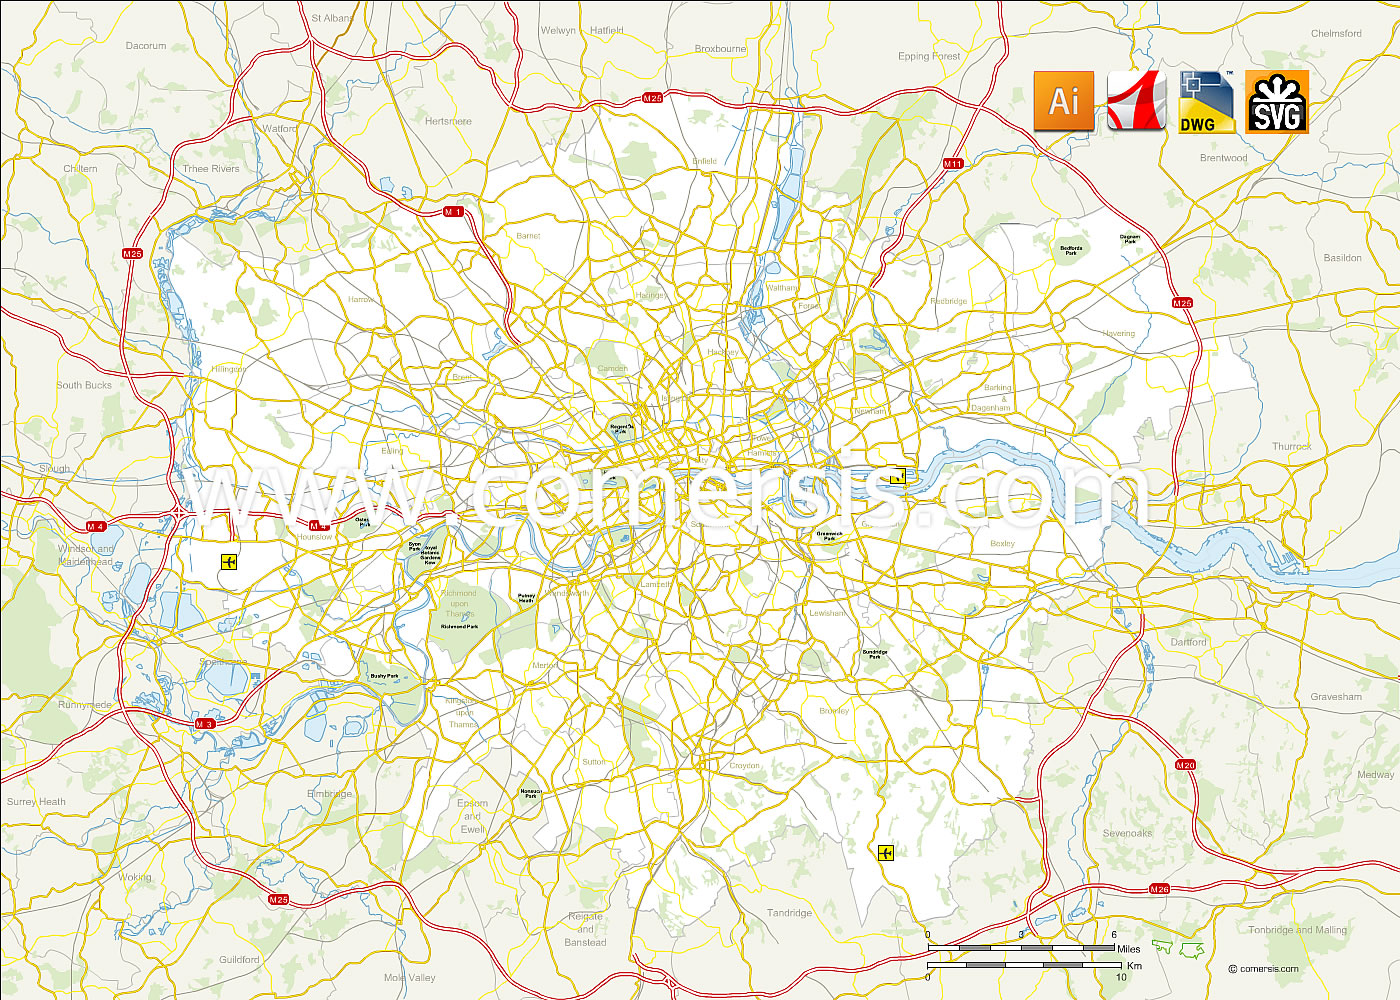 Greater London Map Pdf.Greater London Road Plan Vector Map